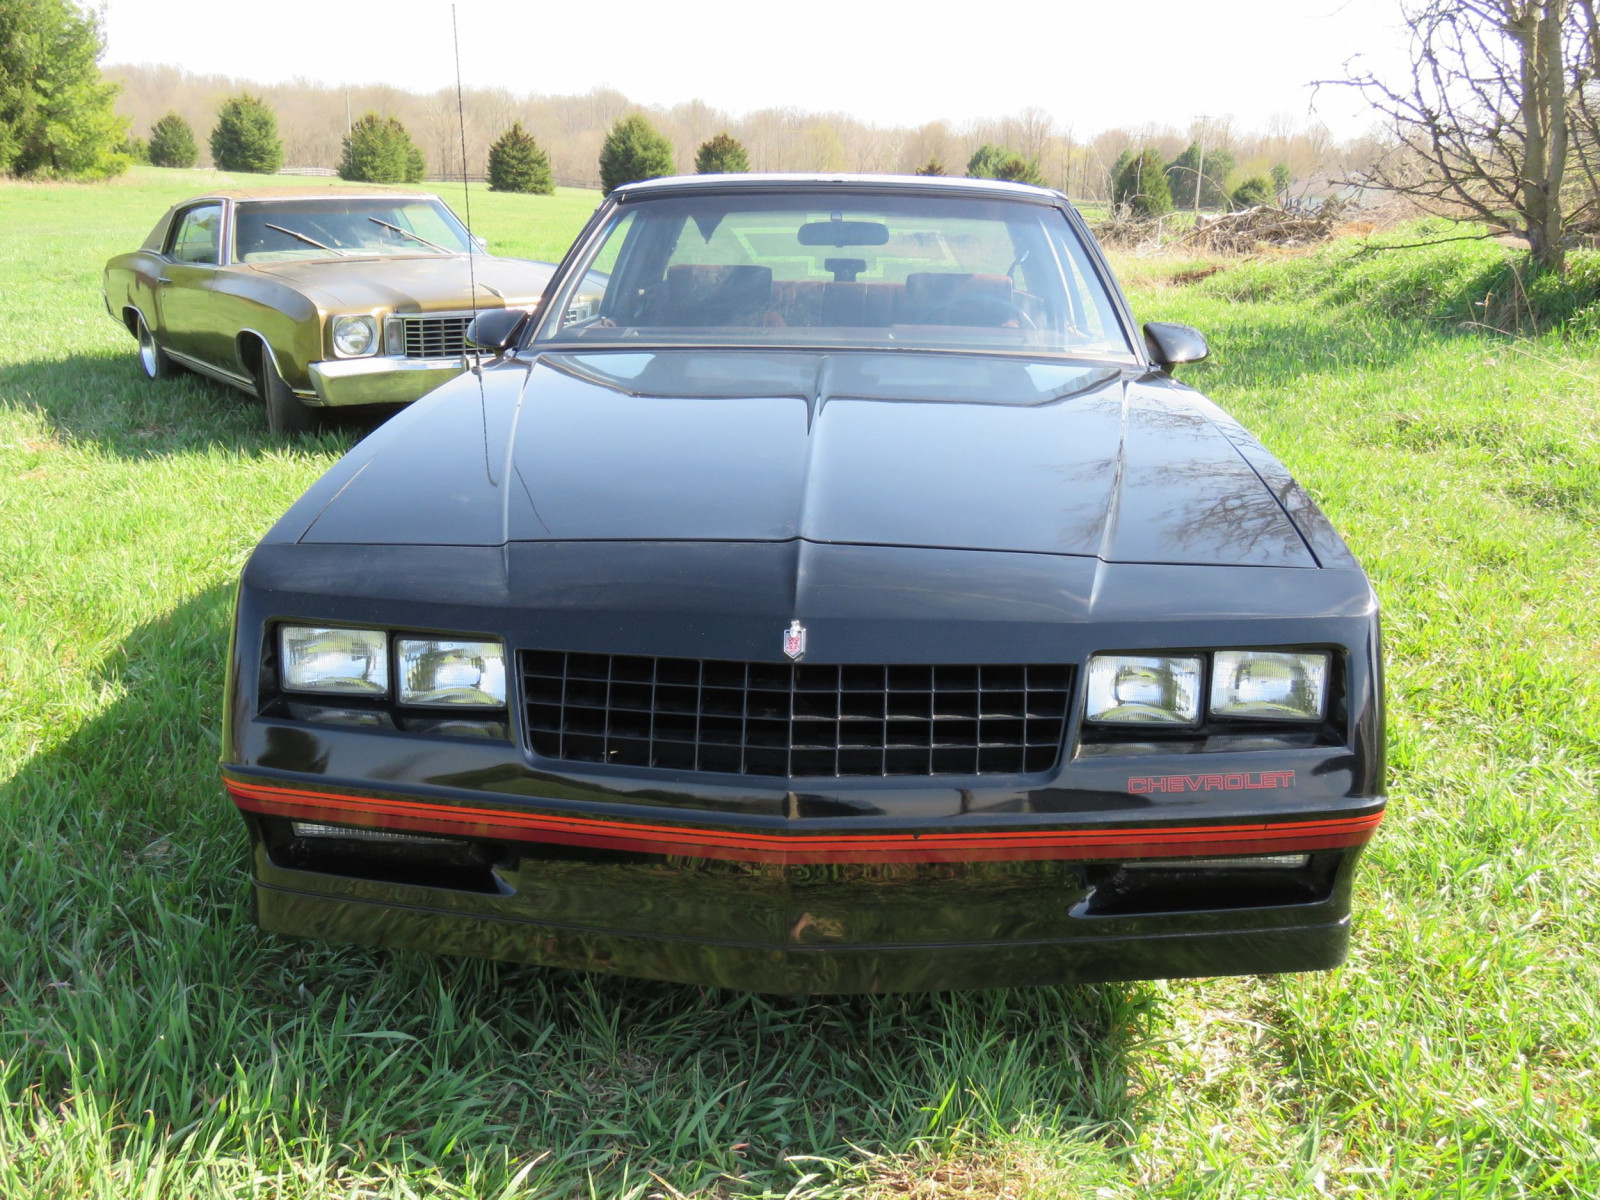 1987 Chevrolet Monte Carlo SS - Image 2